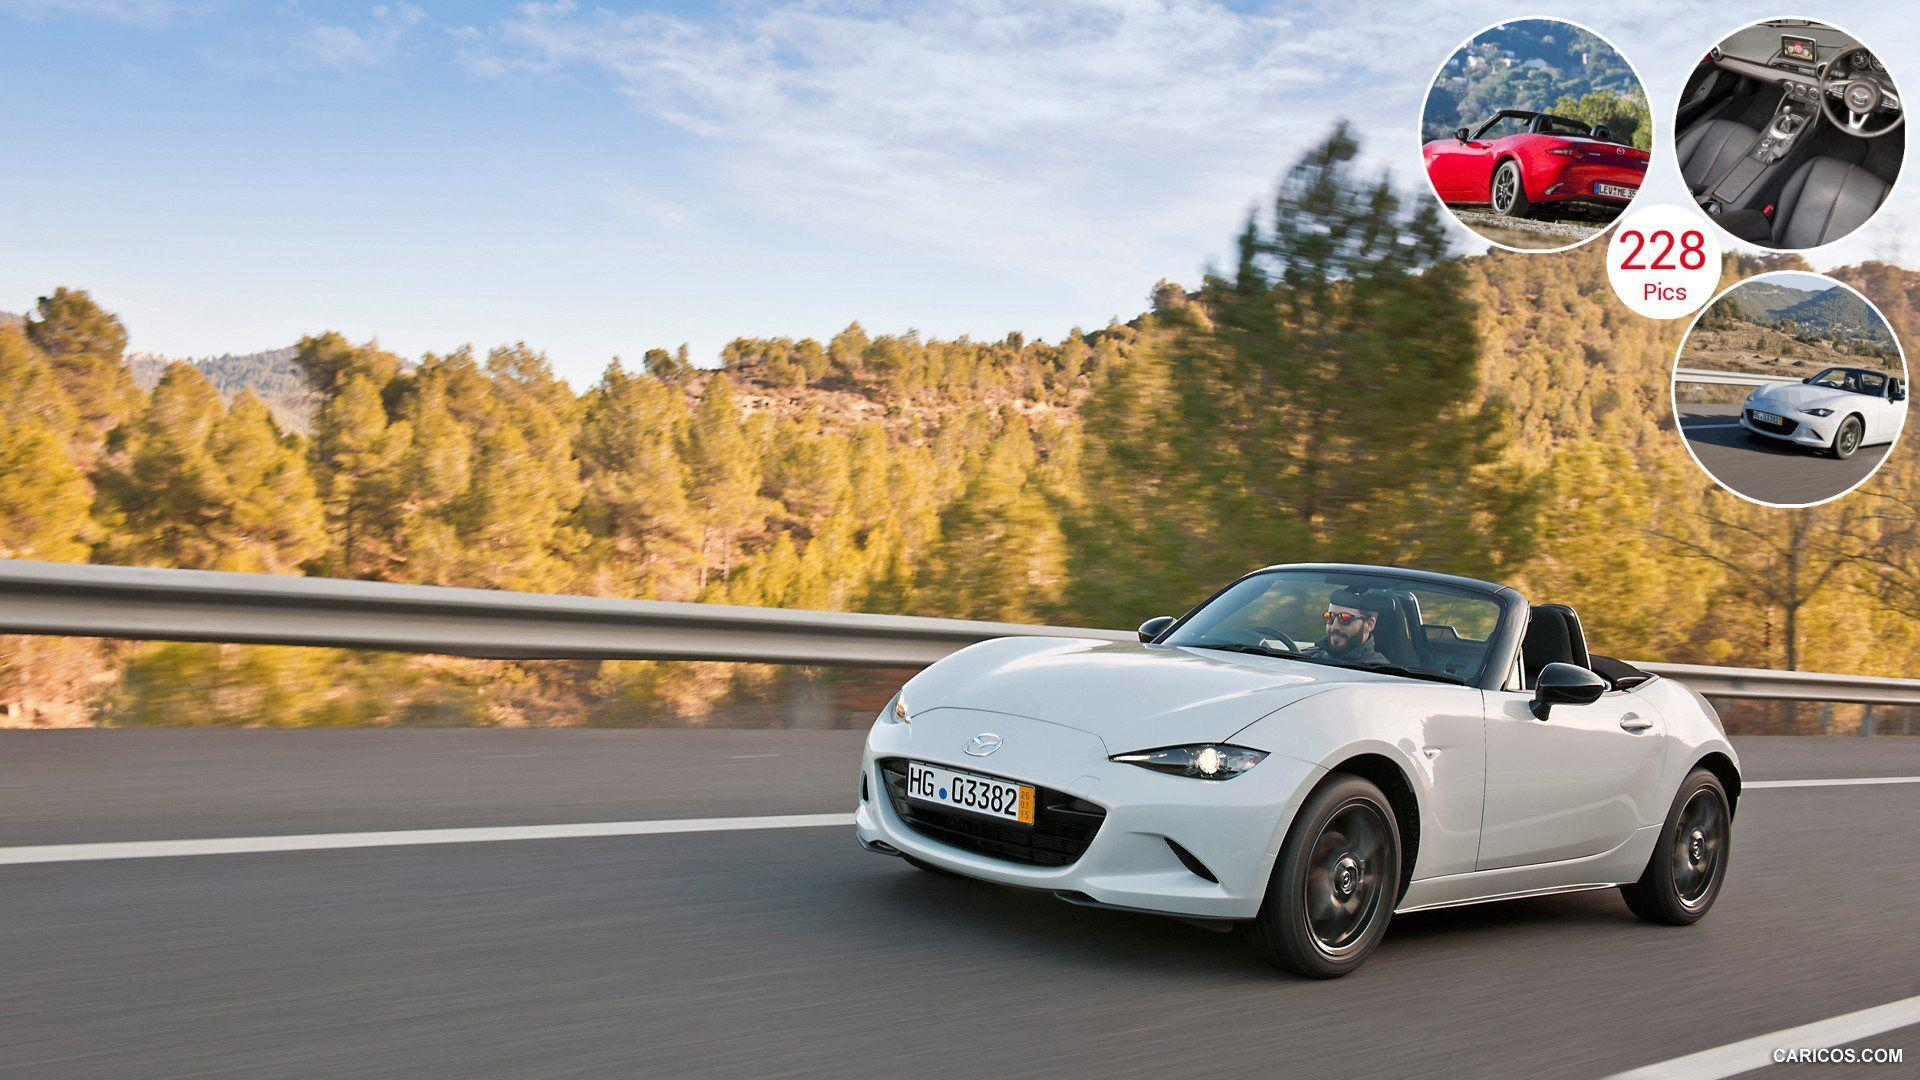 2016 Mazda MX-5 Miata - Front | HD Wallpaper #3